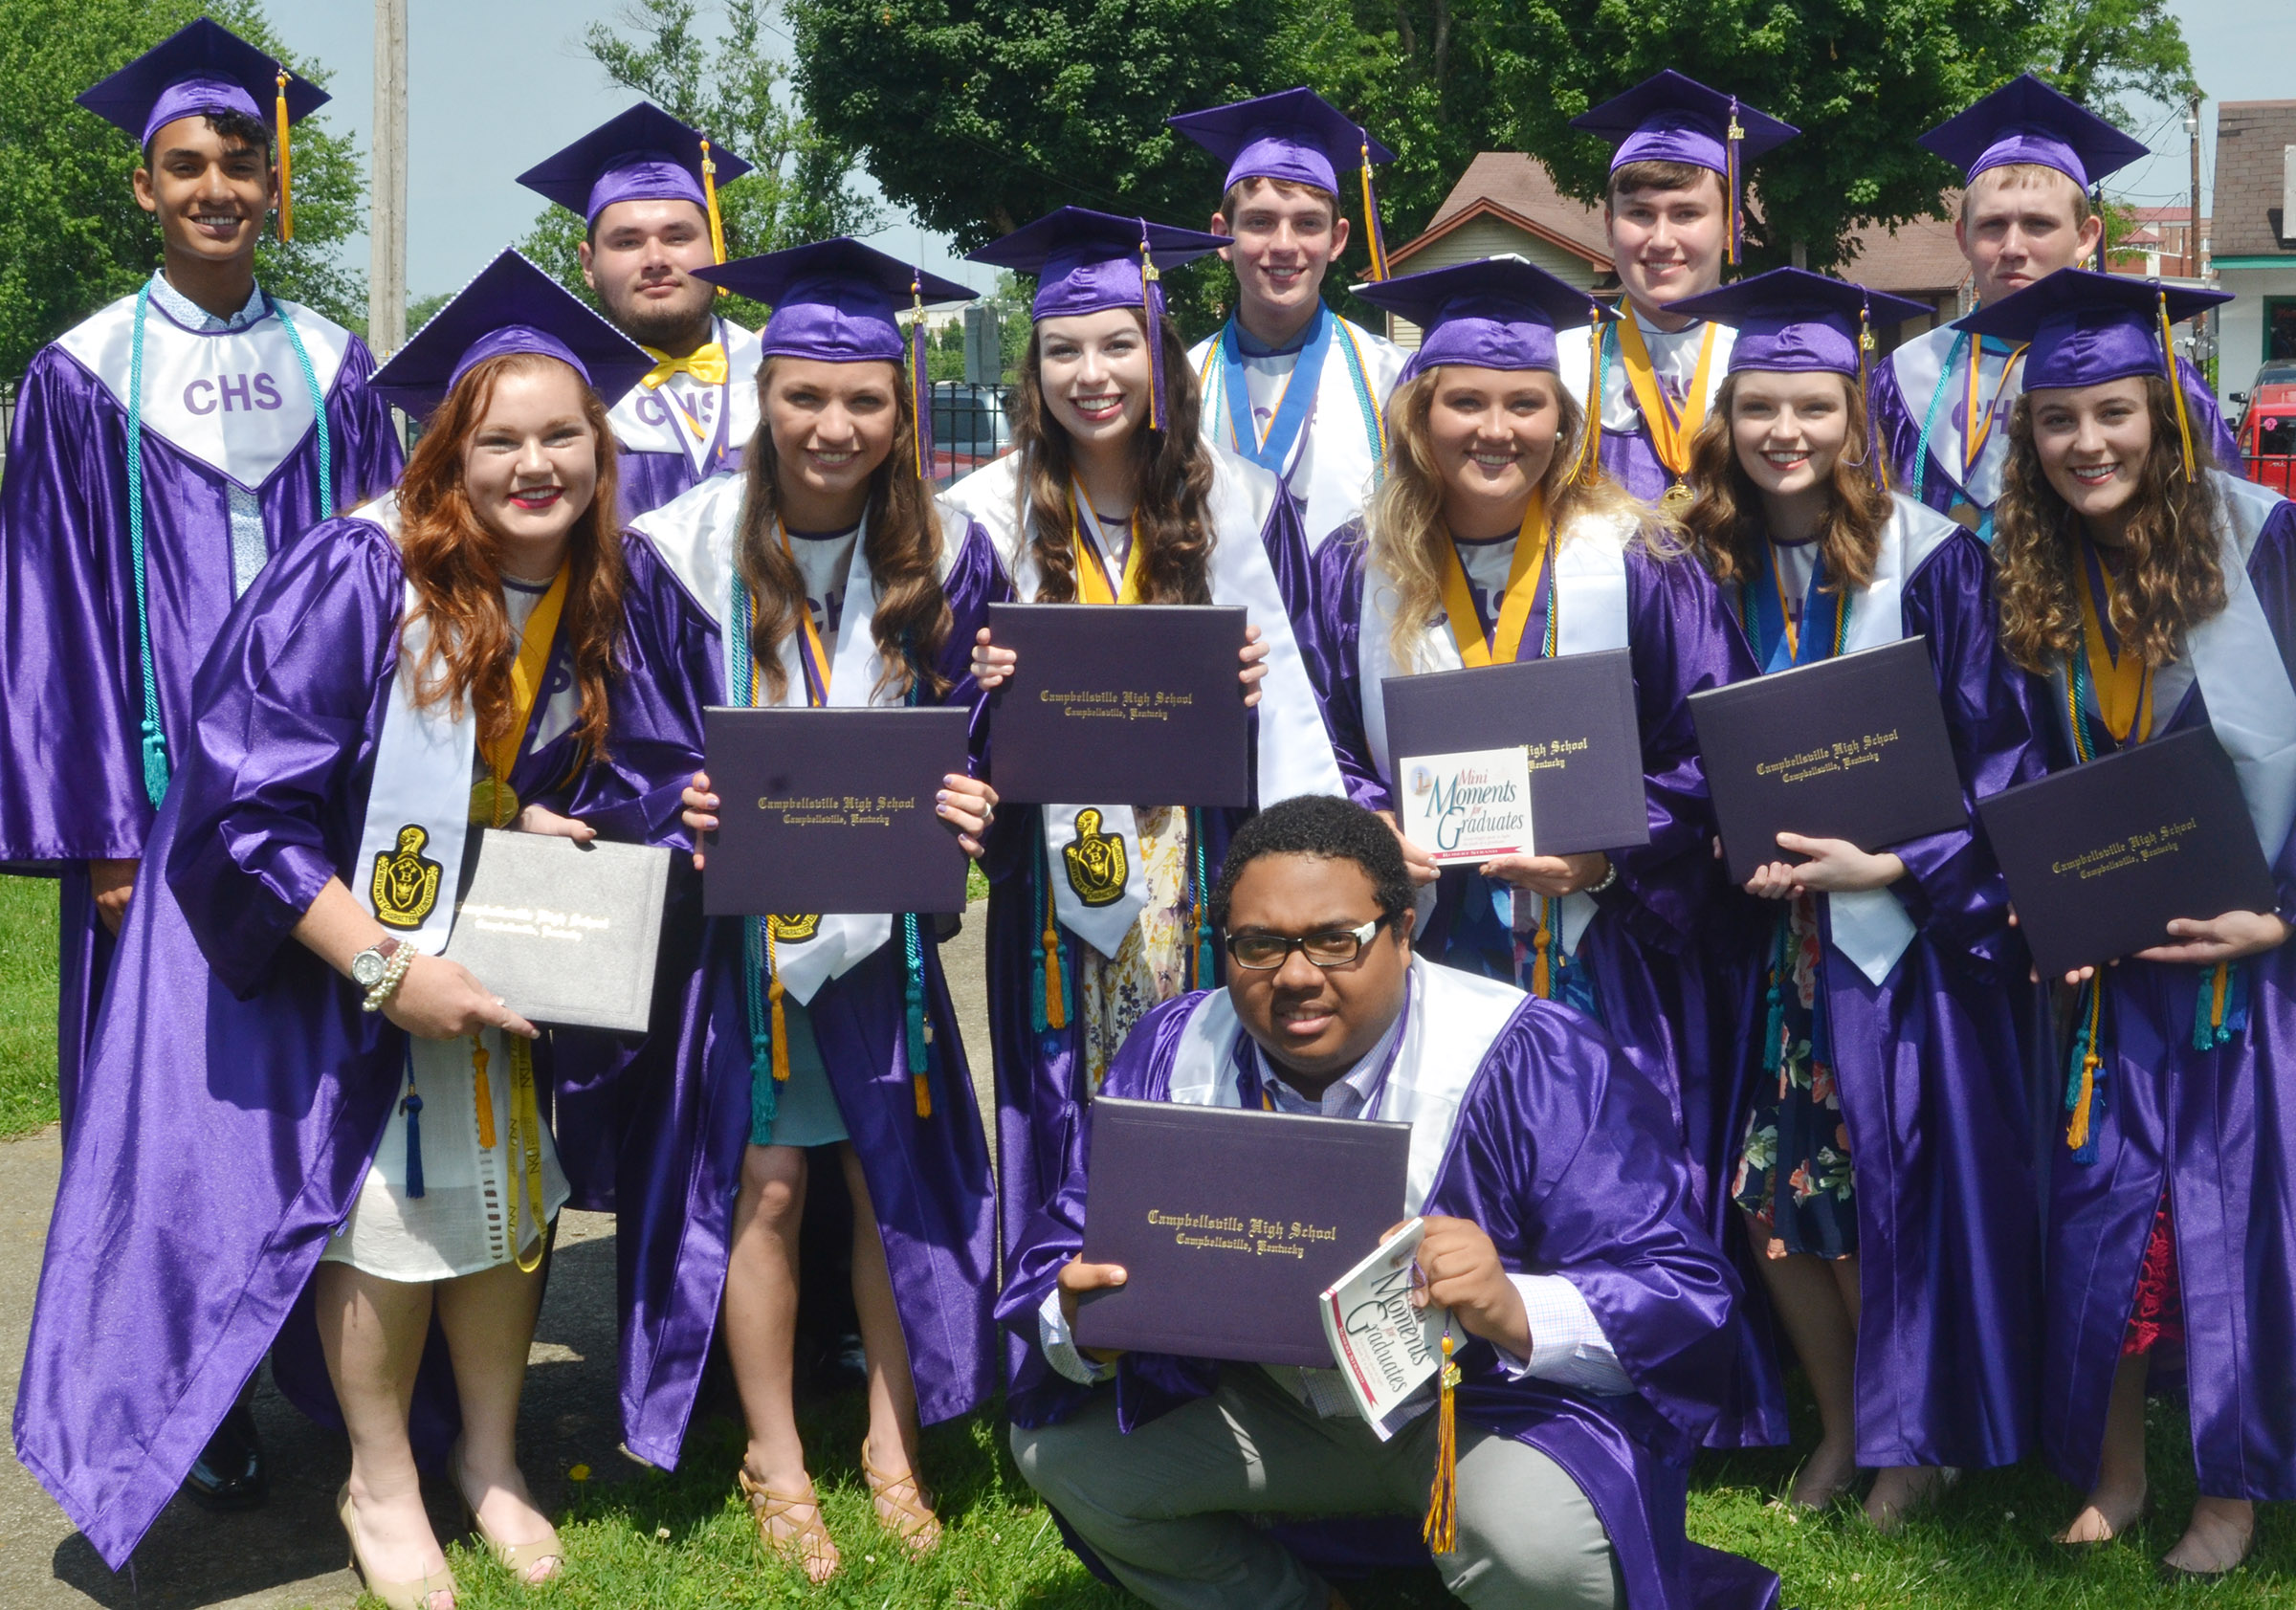 CHS graduates pose for a photo after graduation. In front is Ricky Smith-Cecil. Second row, from left, Mallory Haley, Caylie Blair, Laura Lamb, Brenna Wethington, Blair Lamb and Caroline McMahan. Back, Daniel Silva, Logan Brown, Murphy Lamb, Zack Settle and Jared Brewster.